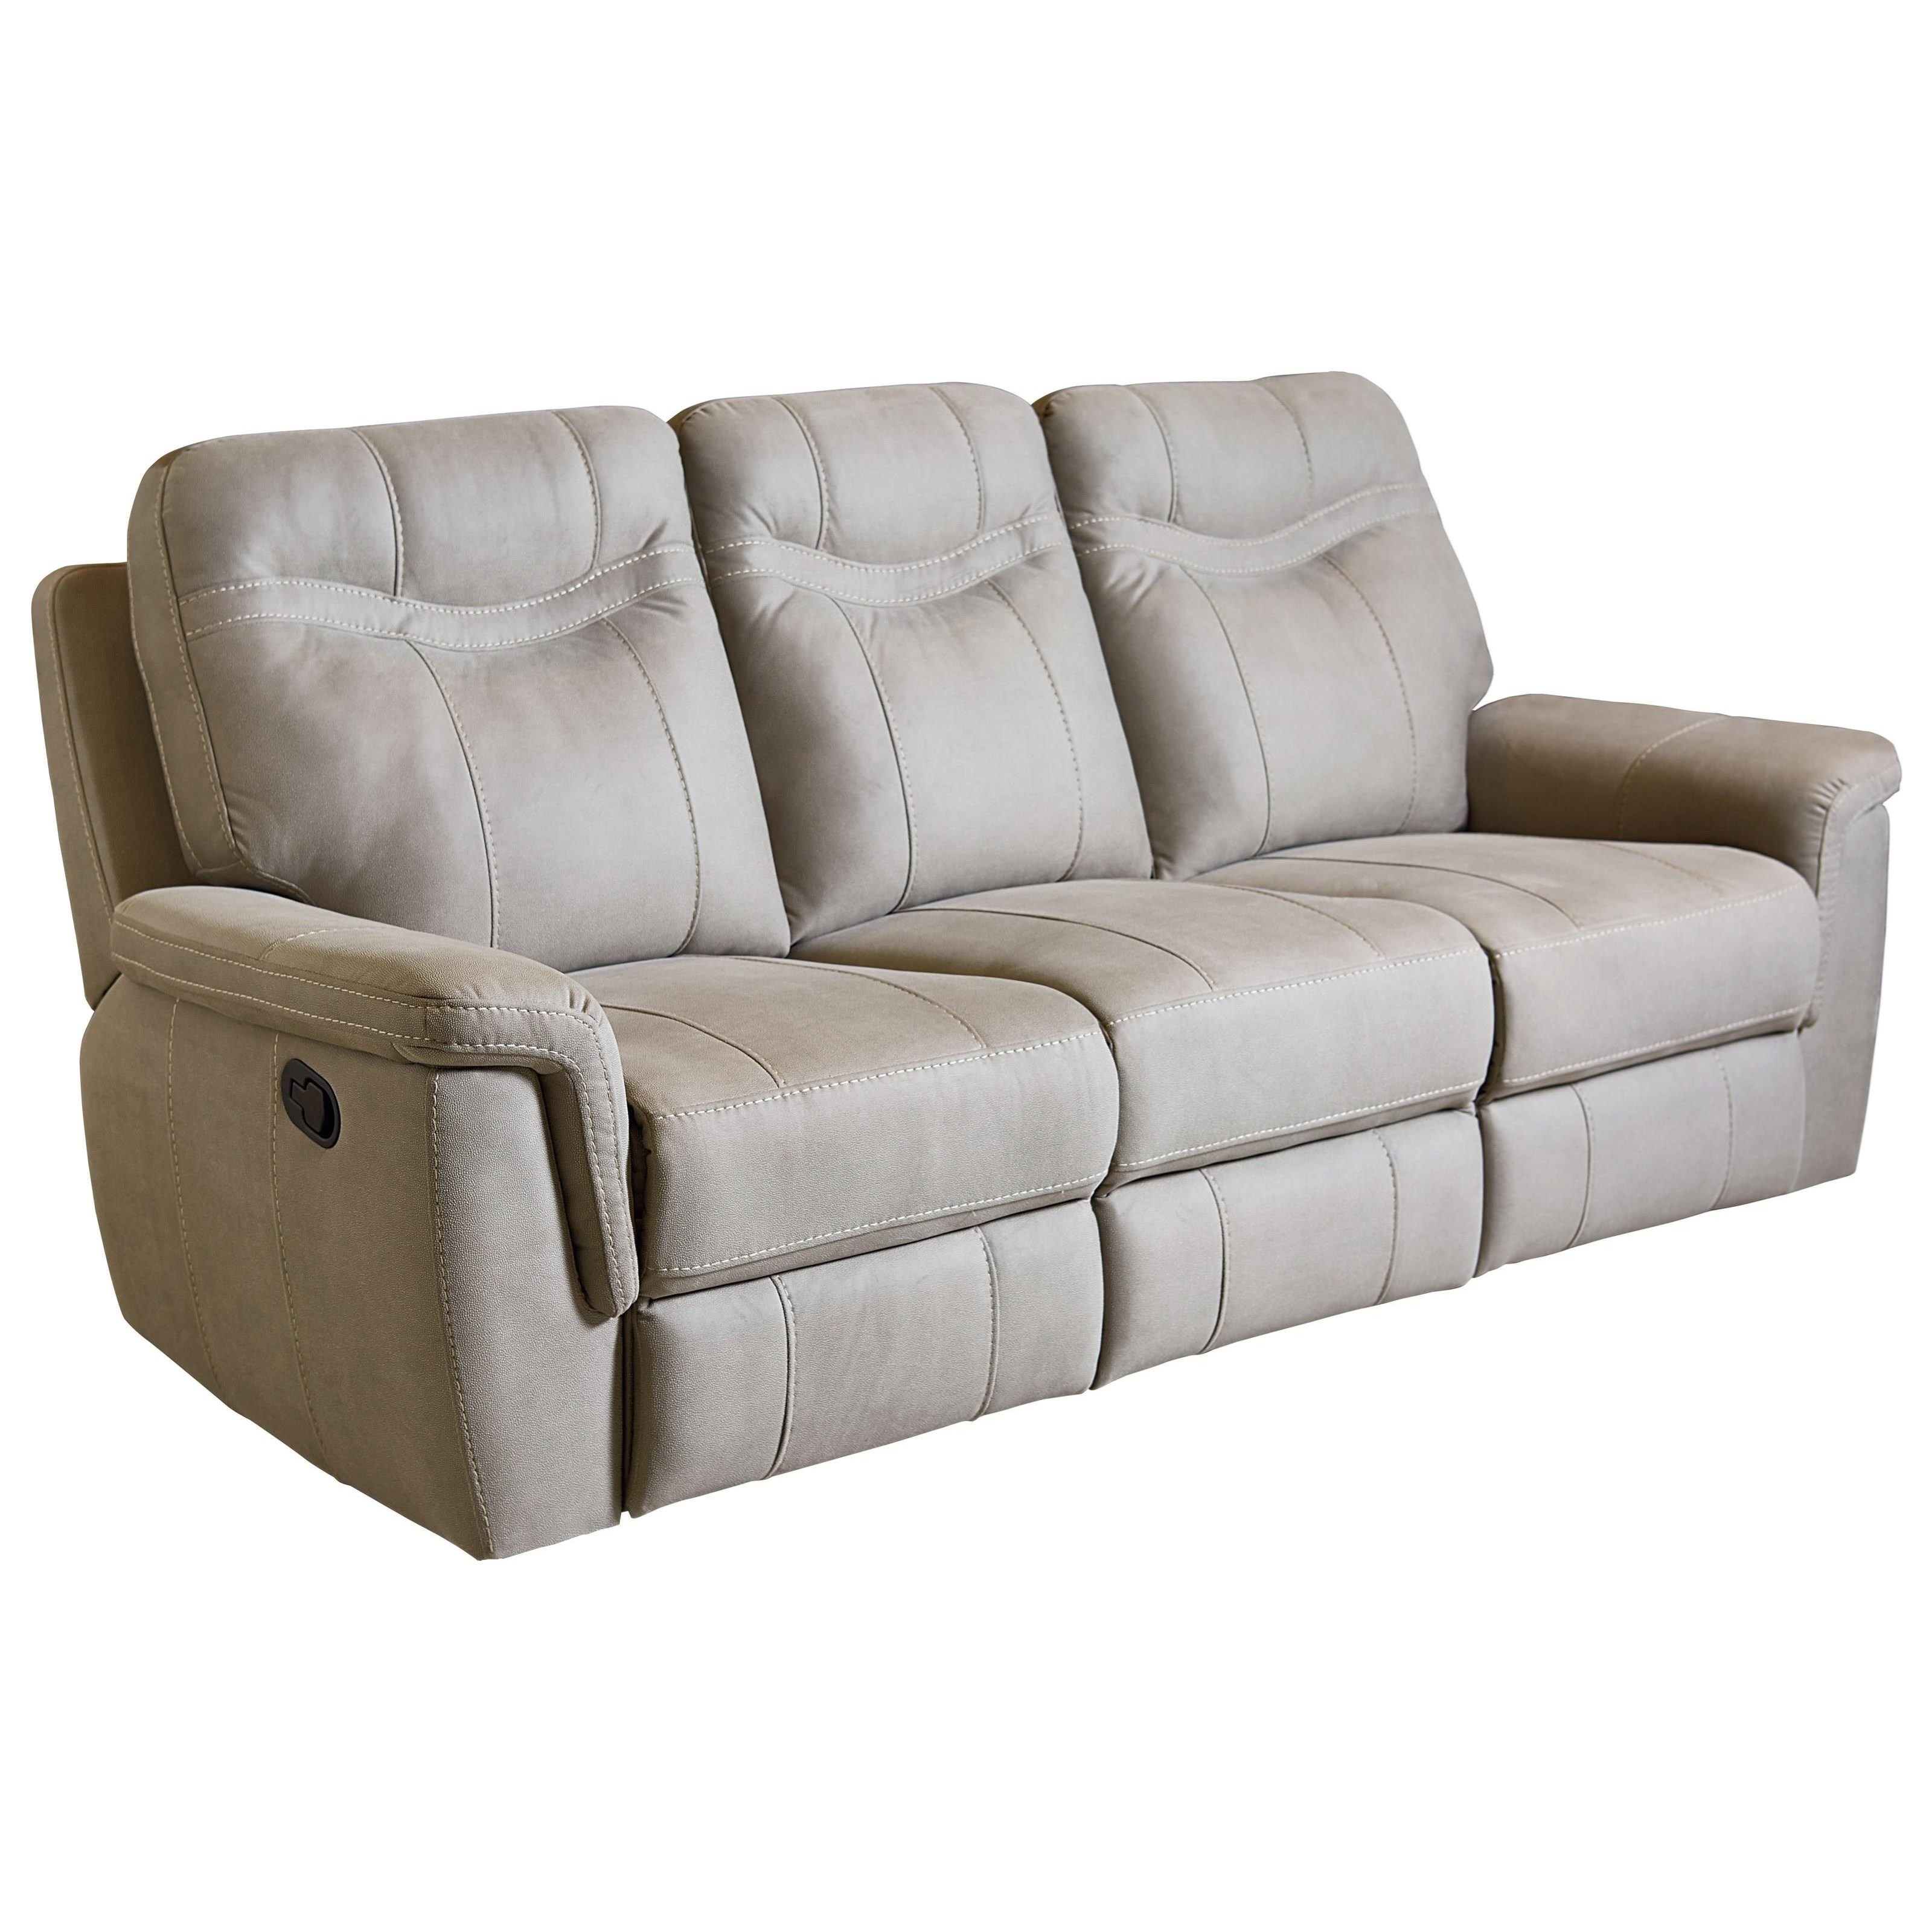 Contemporary stone colored reclining sofa by standard - Sofa reclinable ...